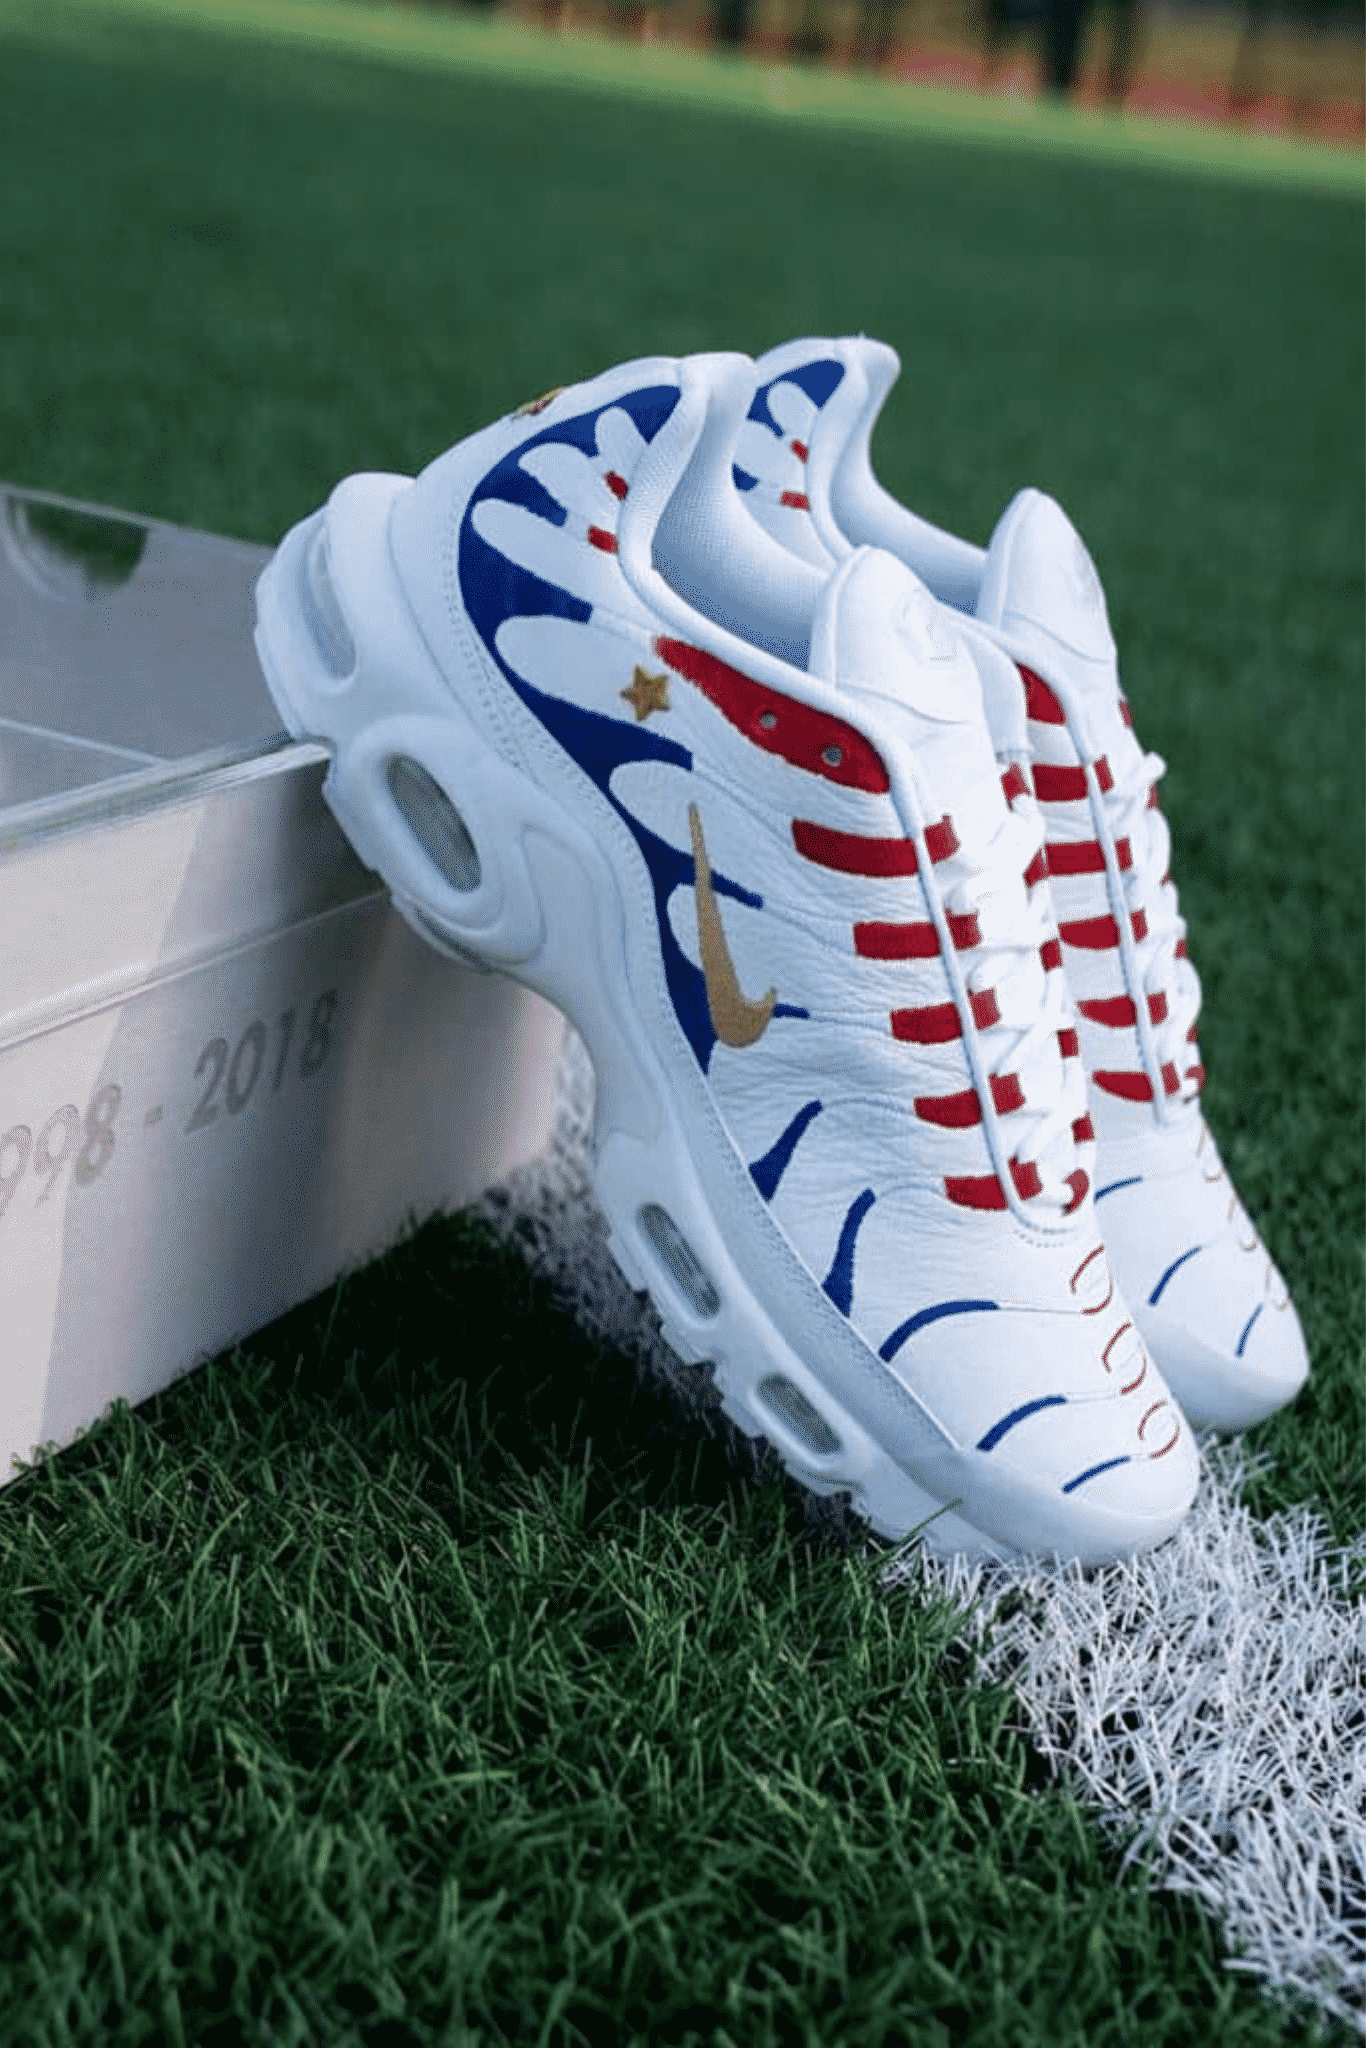 Retrospective Quand les Air Max rencontrent le football